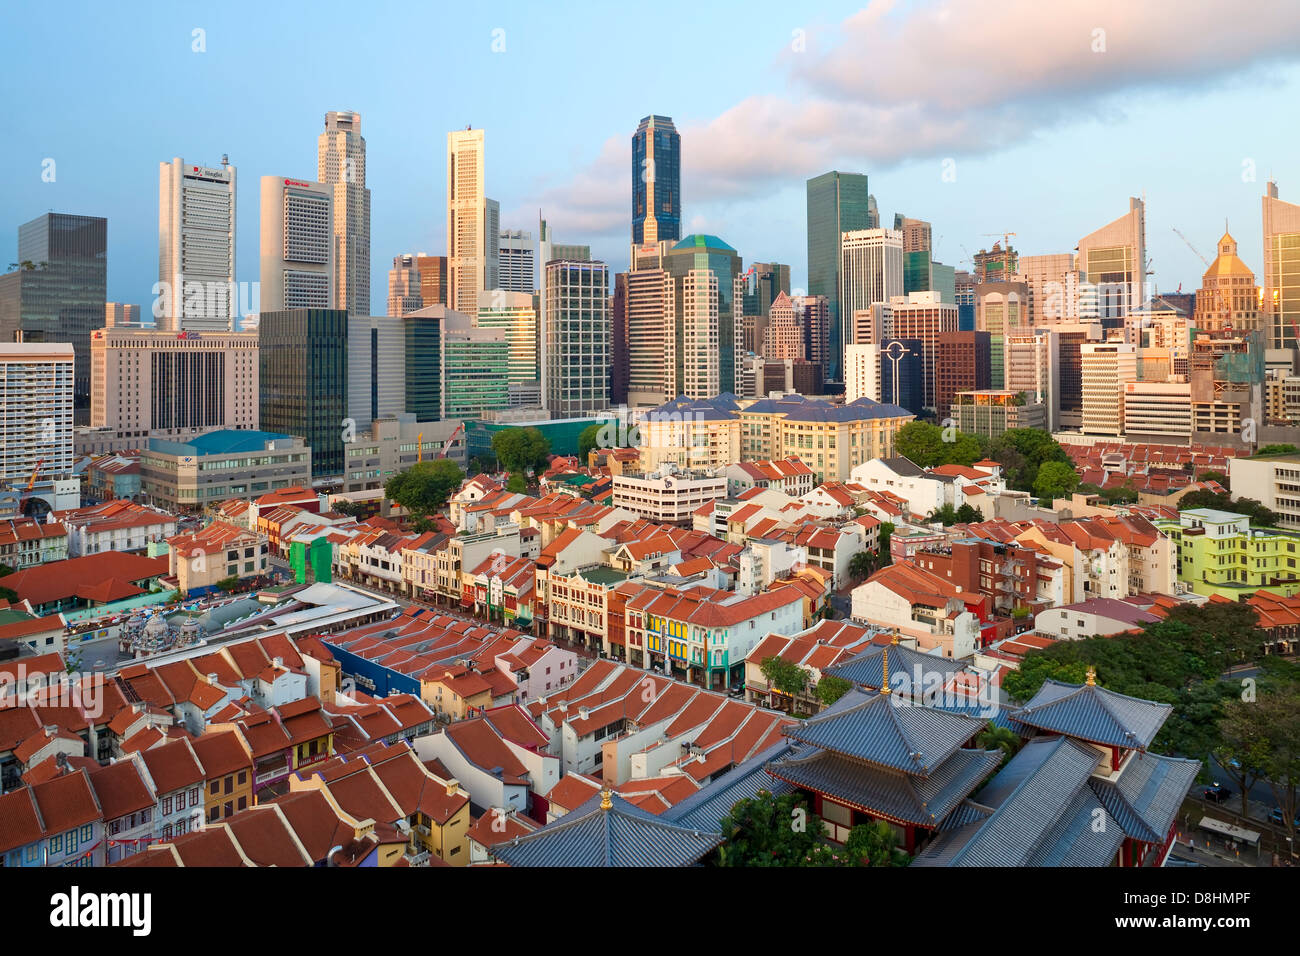 Elevated view over Chinatown, the new Buddha Tooth Relic temple and modern city skyline, Singapore, Asia - Stock Image